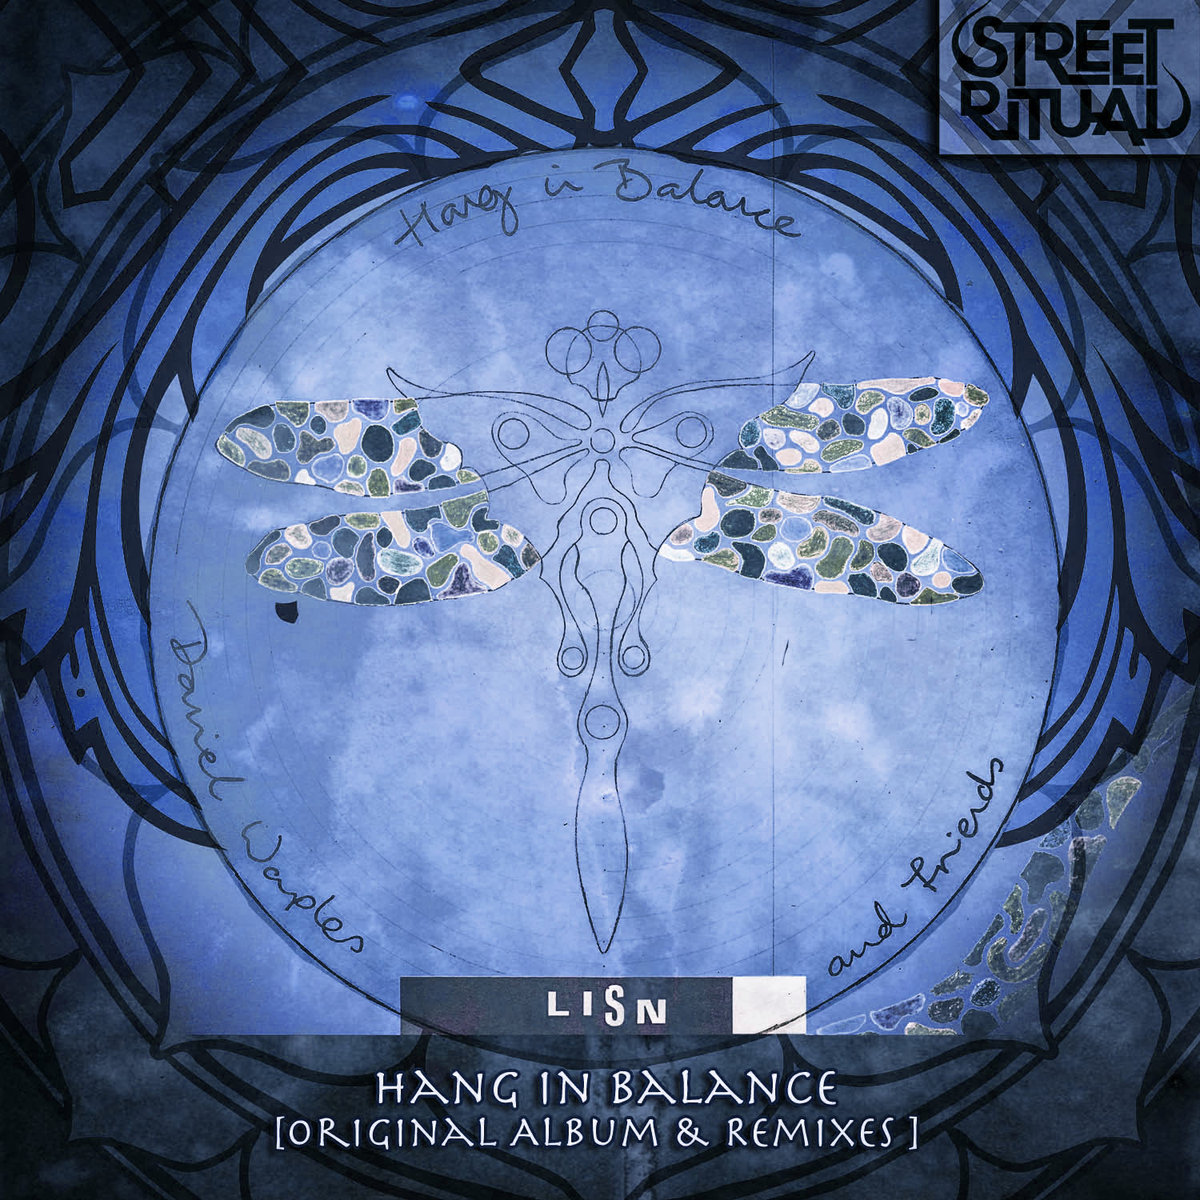 Hang in Balance - Shoheen @ 'Lisn (Remixes & Originals)' album (bass, daniel waples)